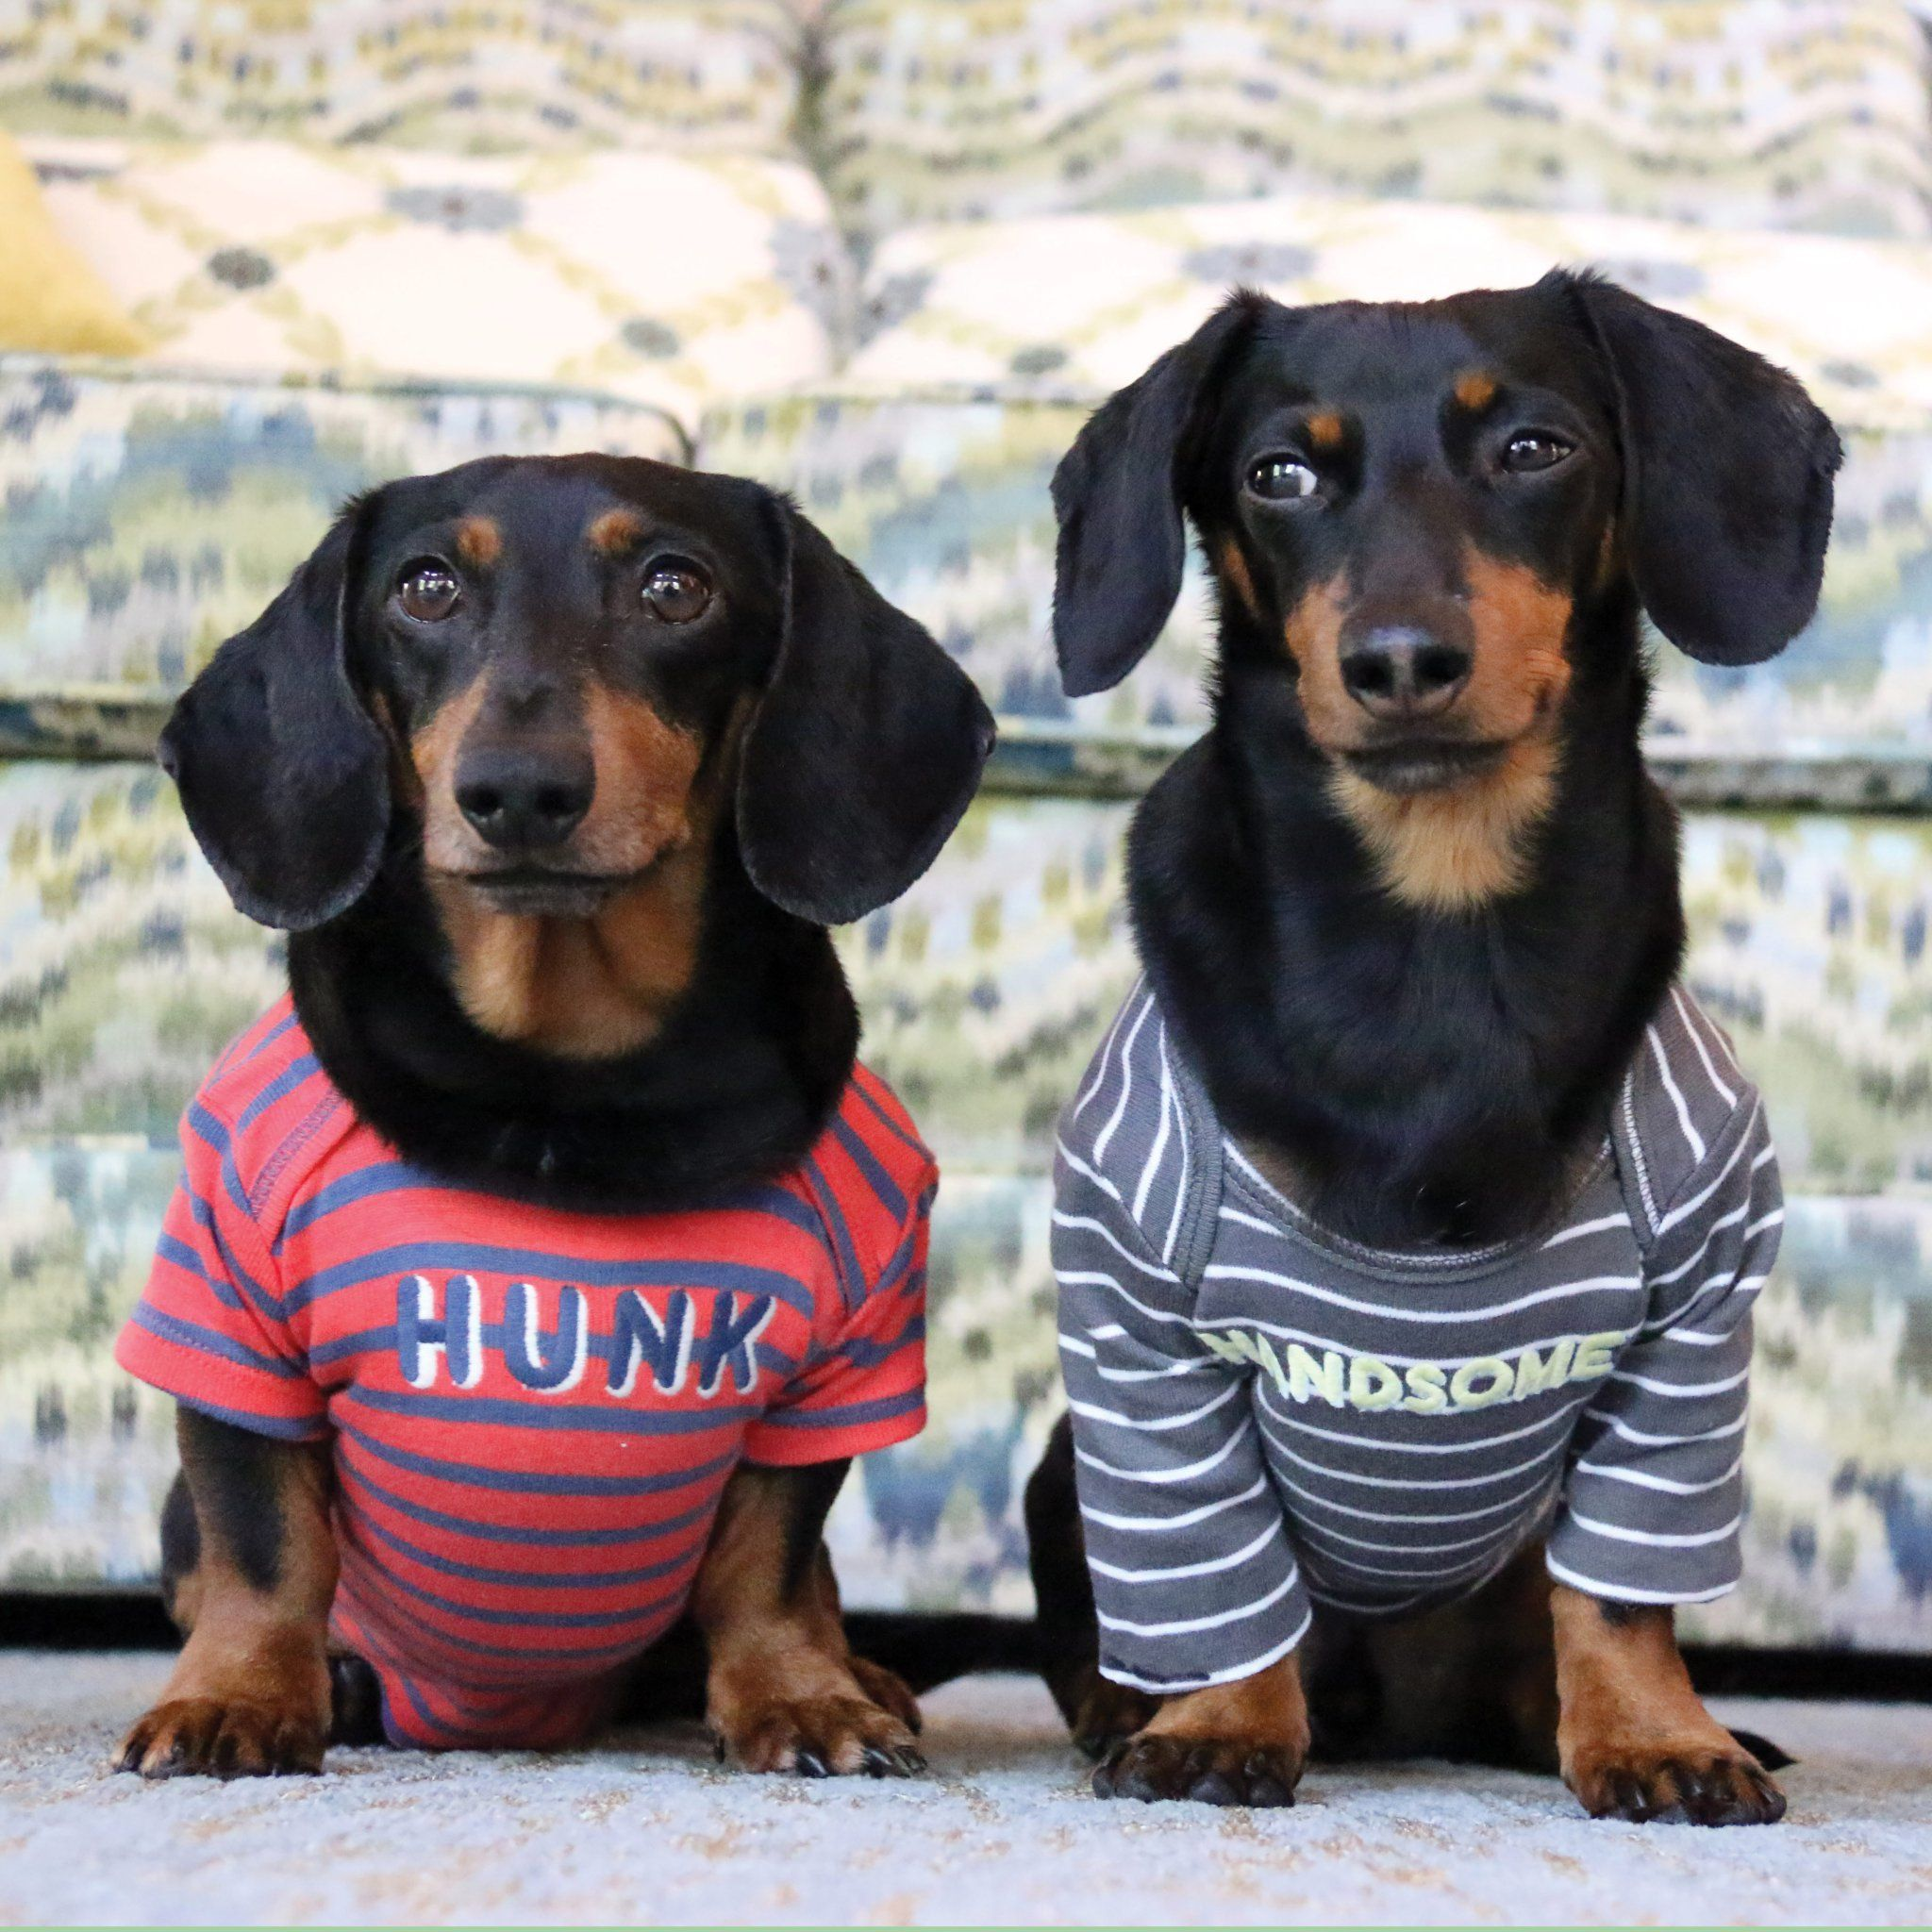 Crusoe Dachshund On Dachshund Clothes Crusoe The Celebrity